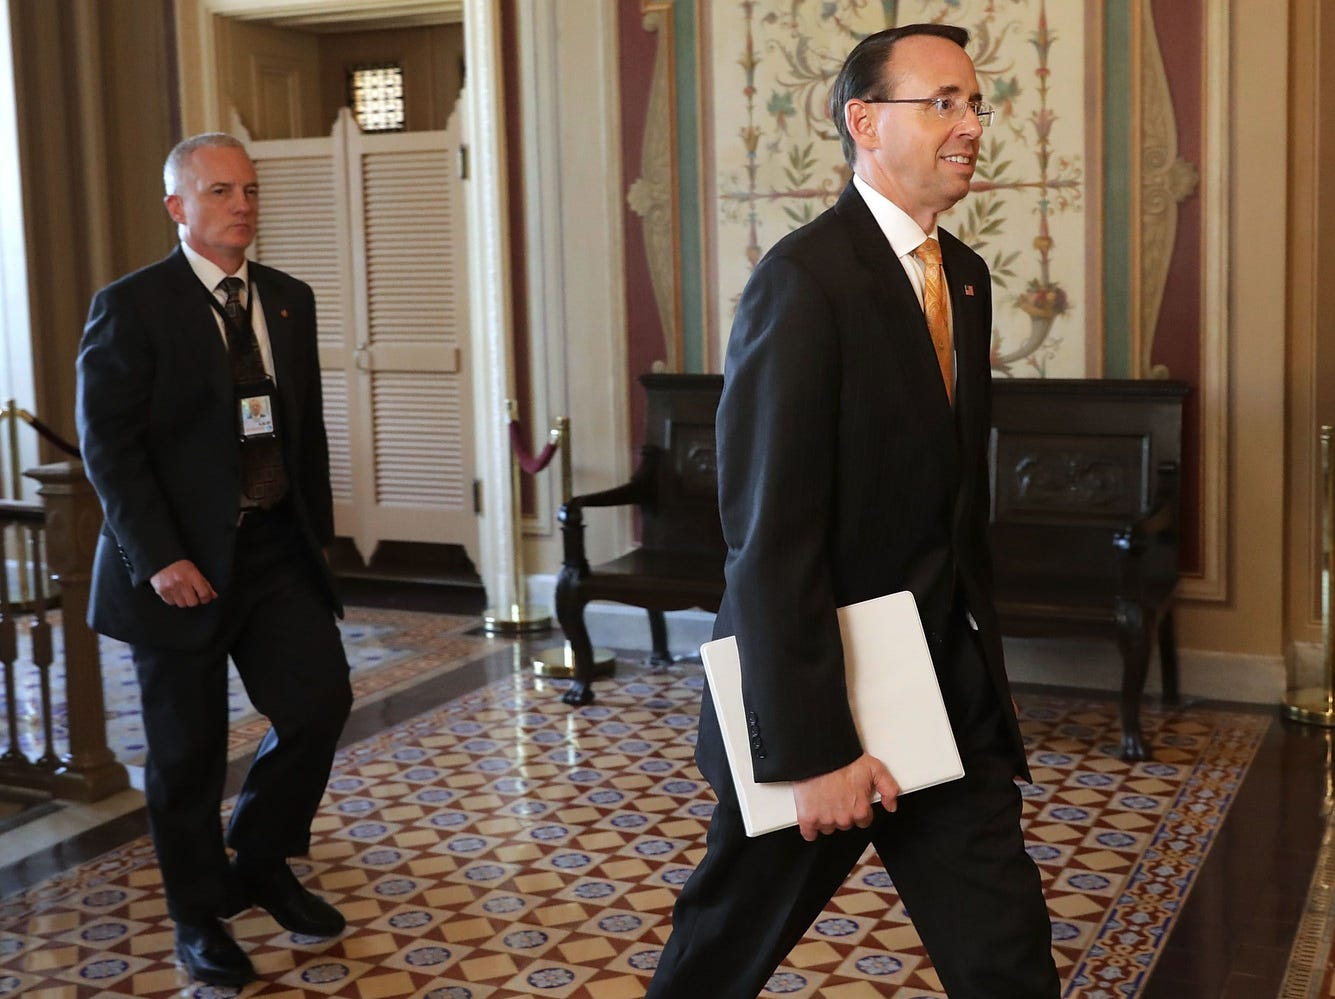 The Deputy Attorney General leaves the U.S. Capitol following a closed-door briefing with members of the House of Representatives on May 19, 2017.